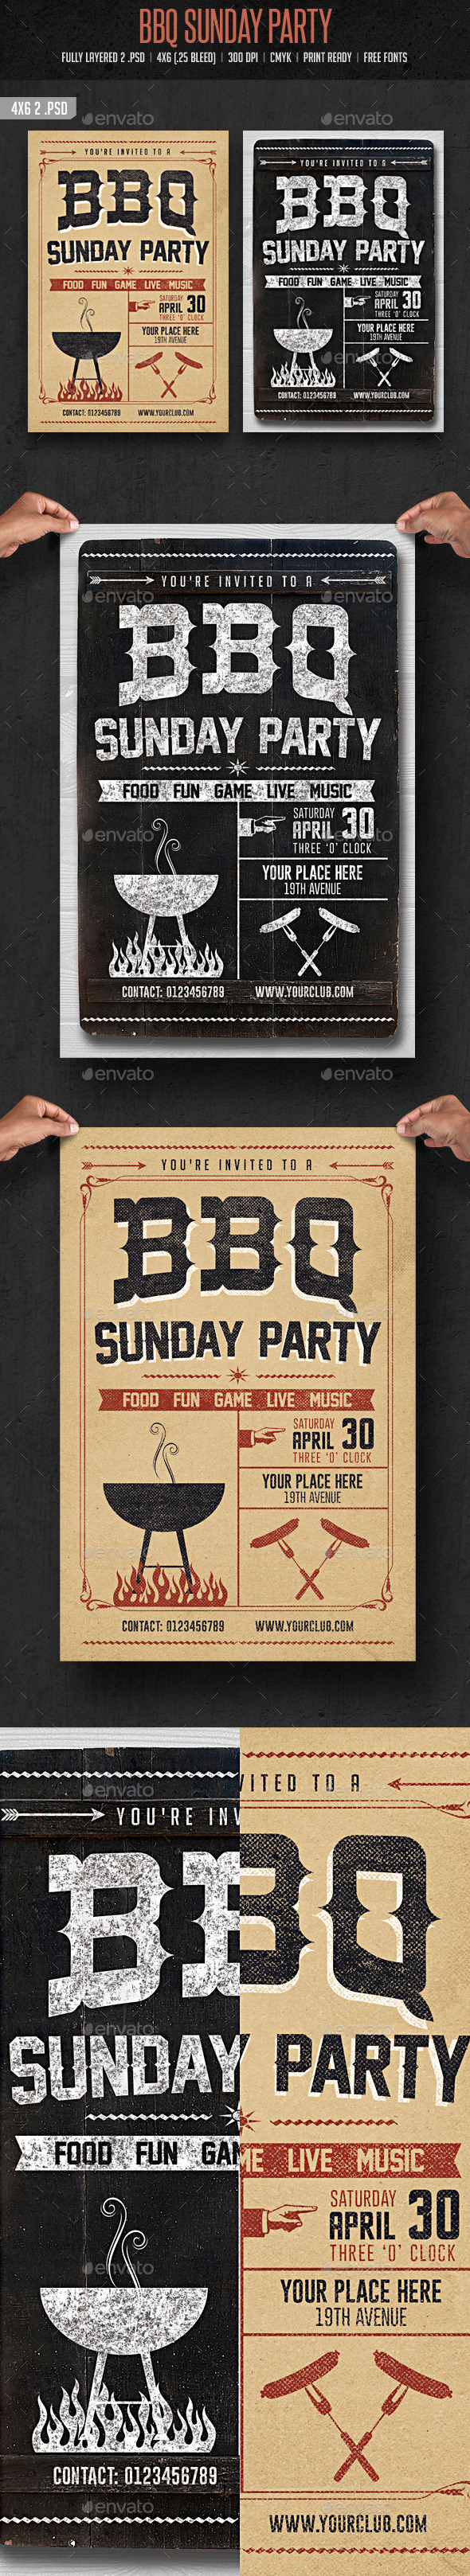 GraphicRiver BBQ Sunday Party 10527953